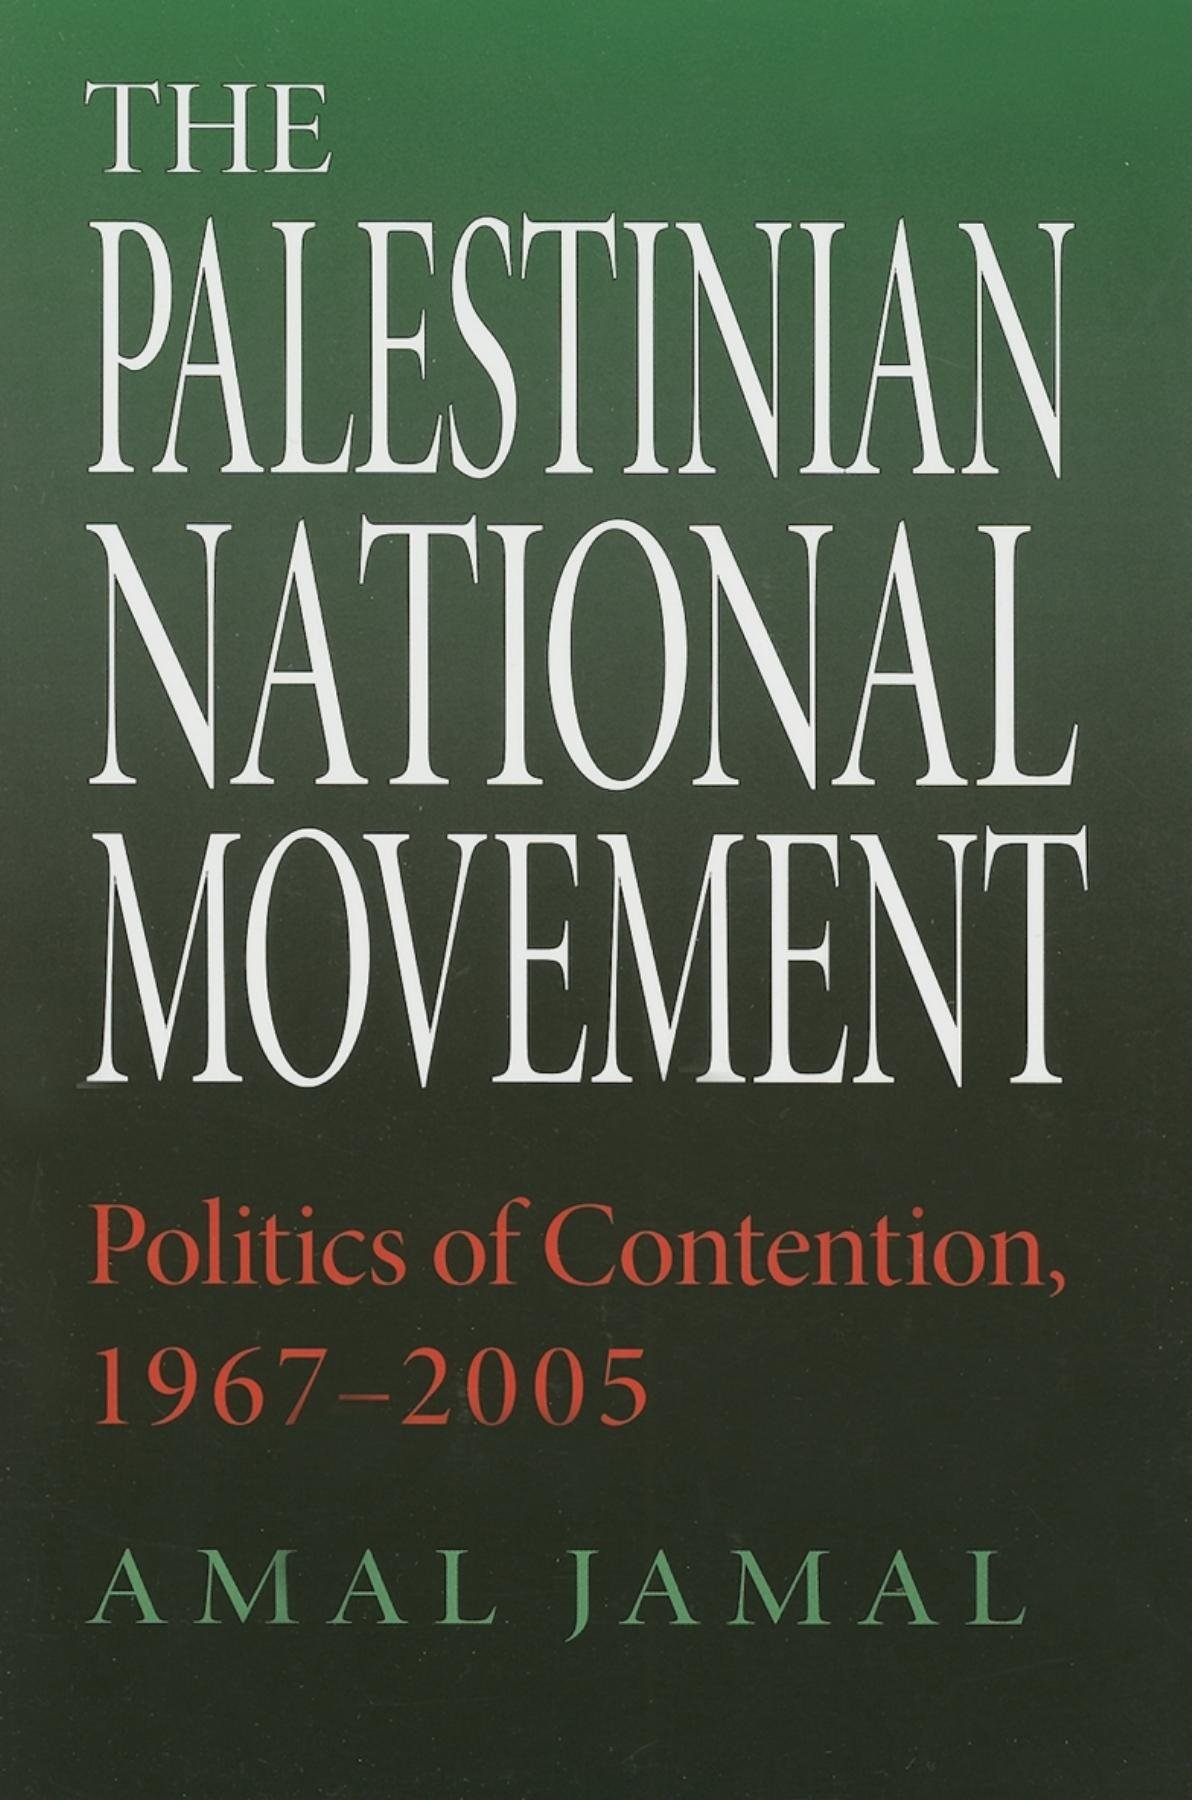 The Palestinian National Movement: Politics of Contention, 1967-2005 (Indiana Series in Middle East Studies) ebook